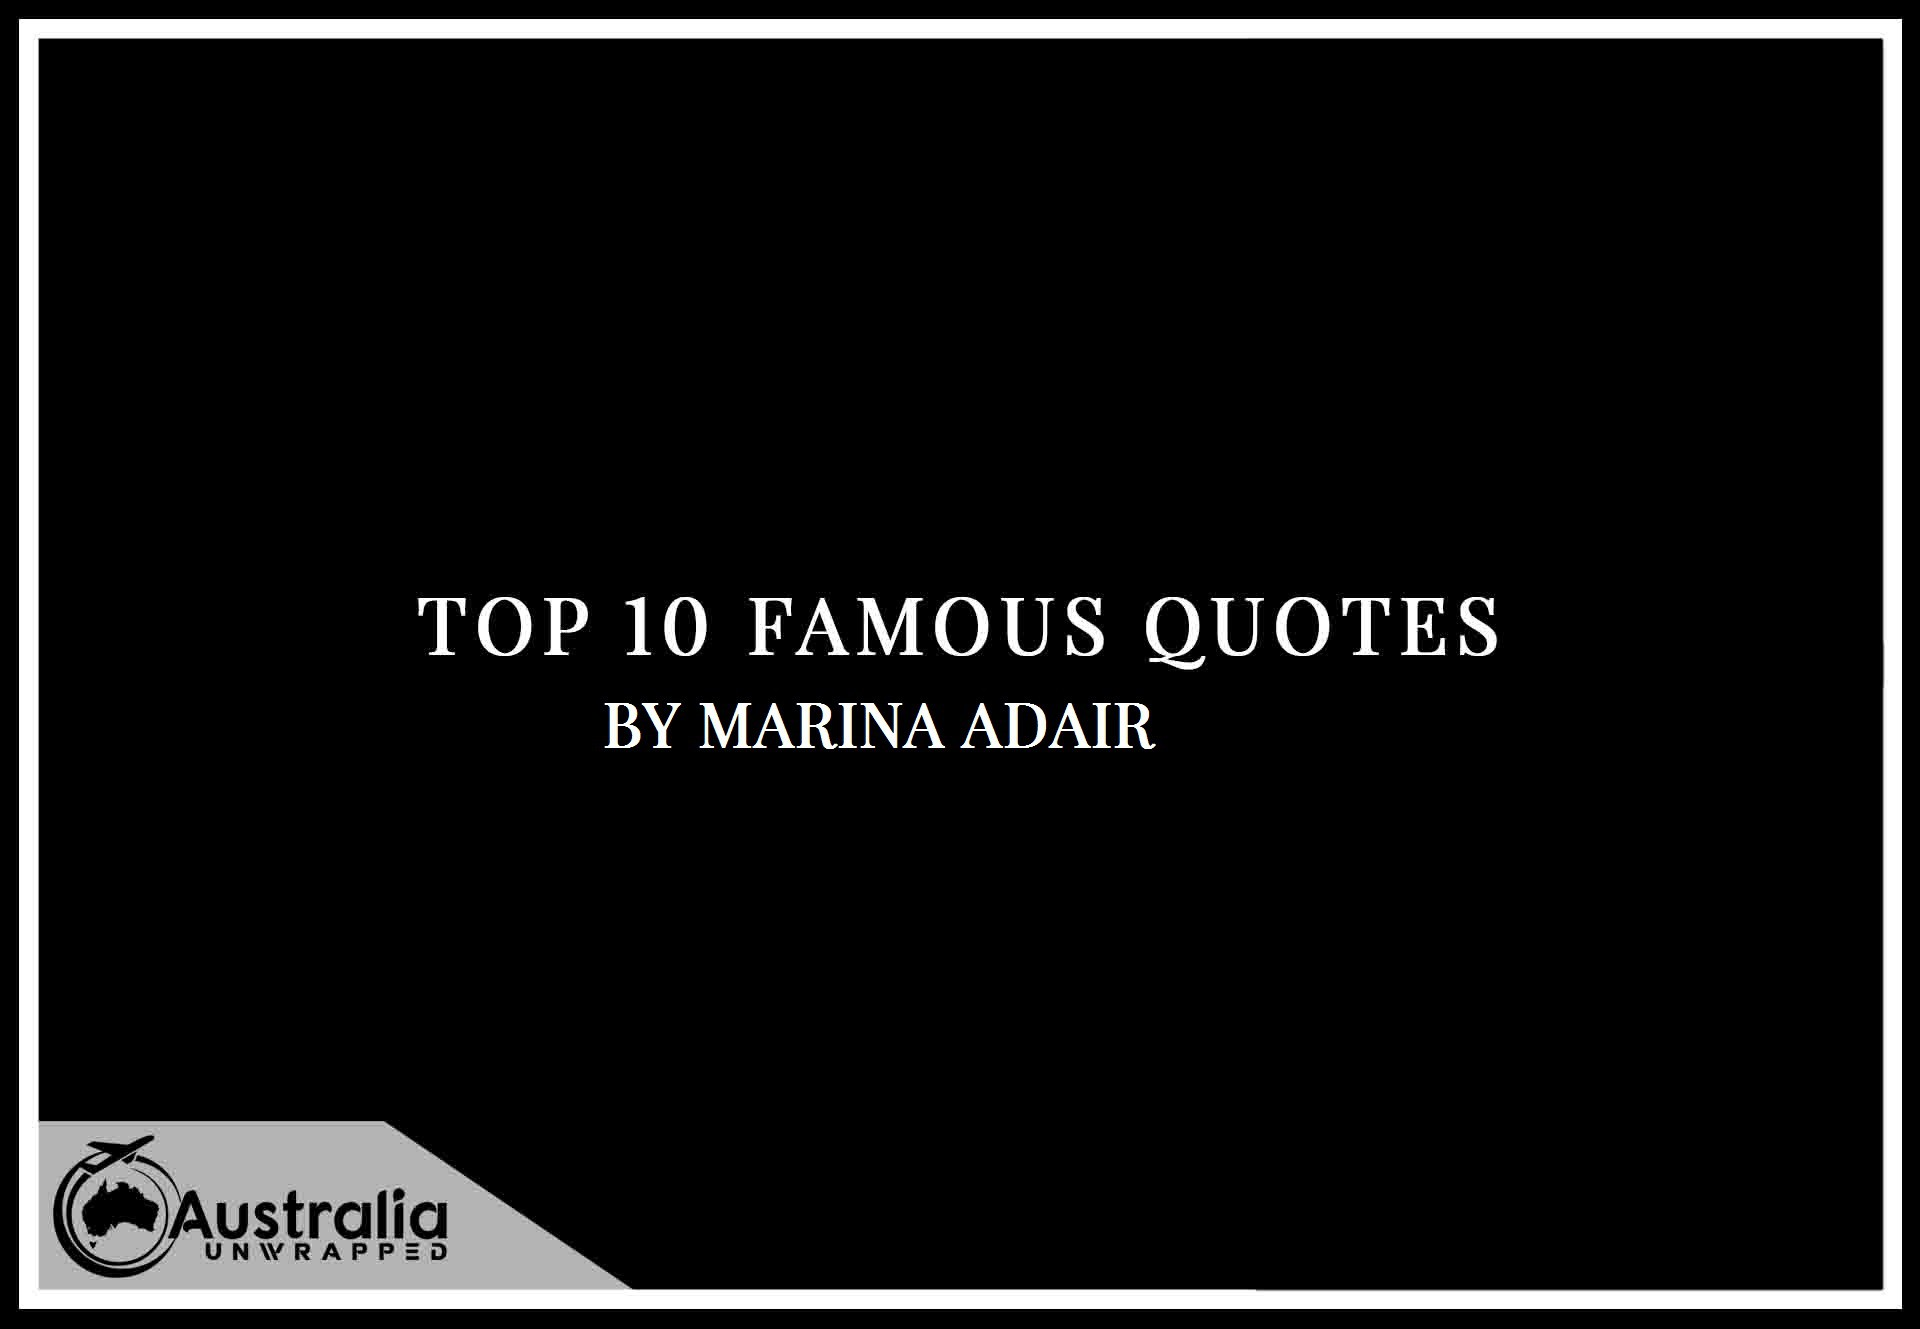 Marina Adair's Top 10 Popular and Famous Quotes